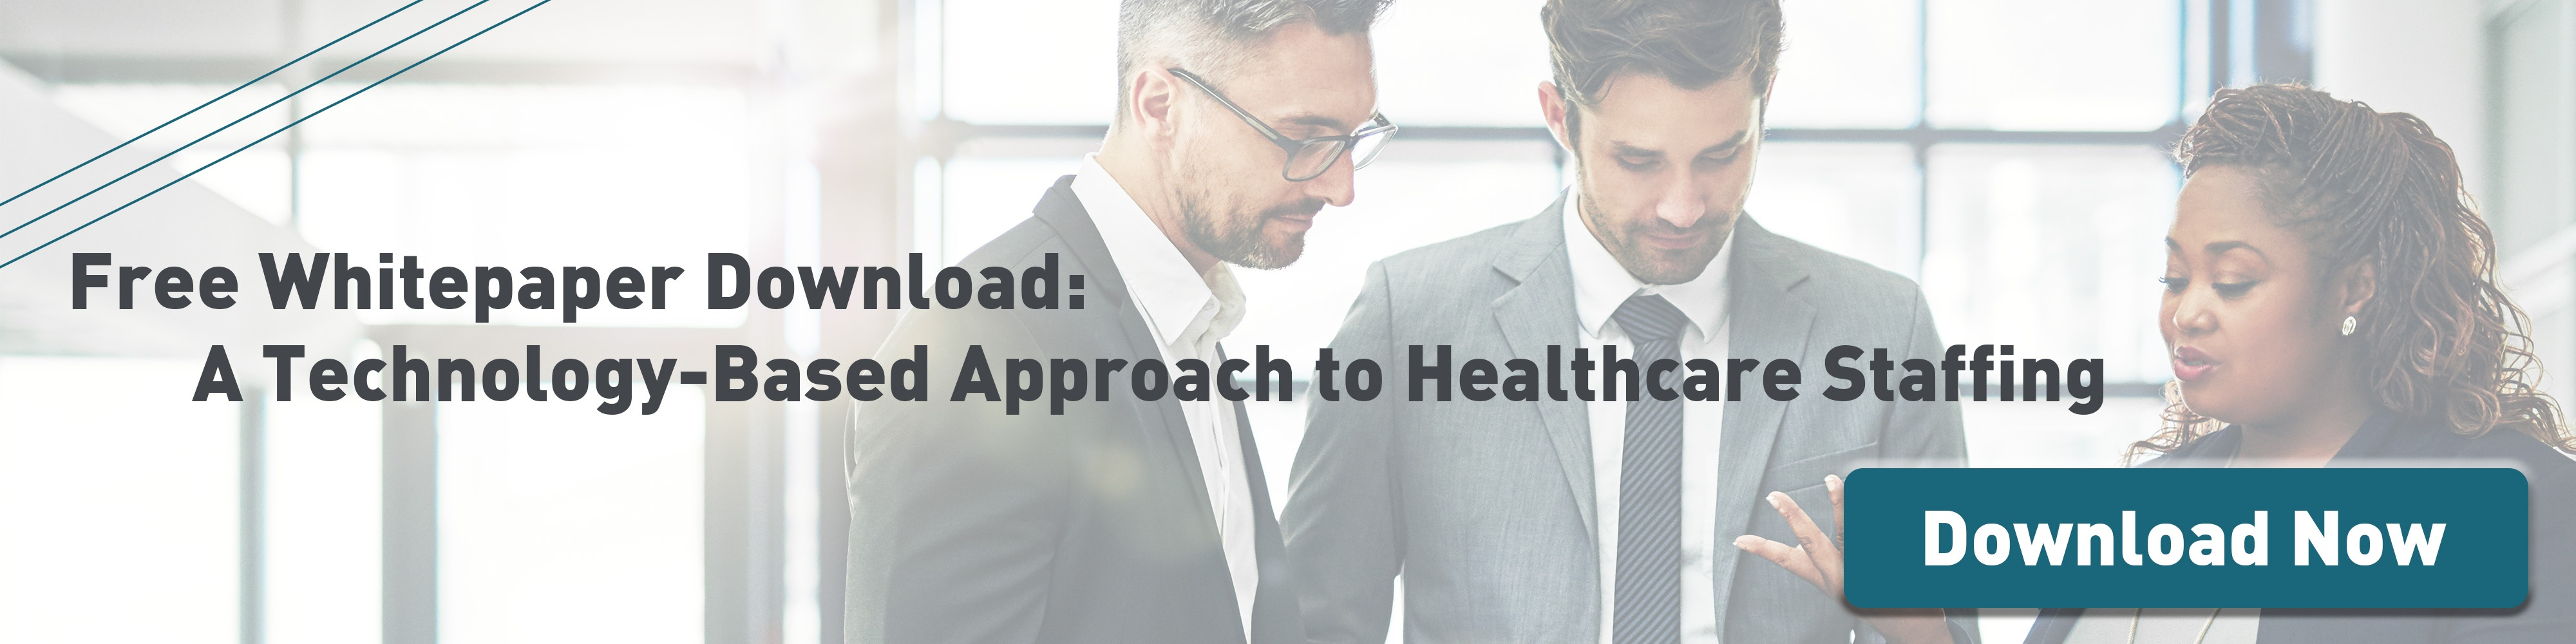 Technology Based Approach to Healthcare Staffing